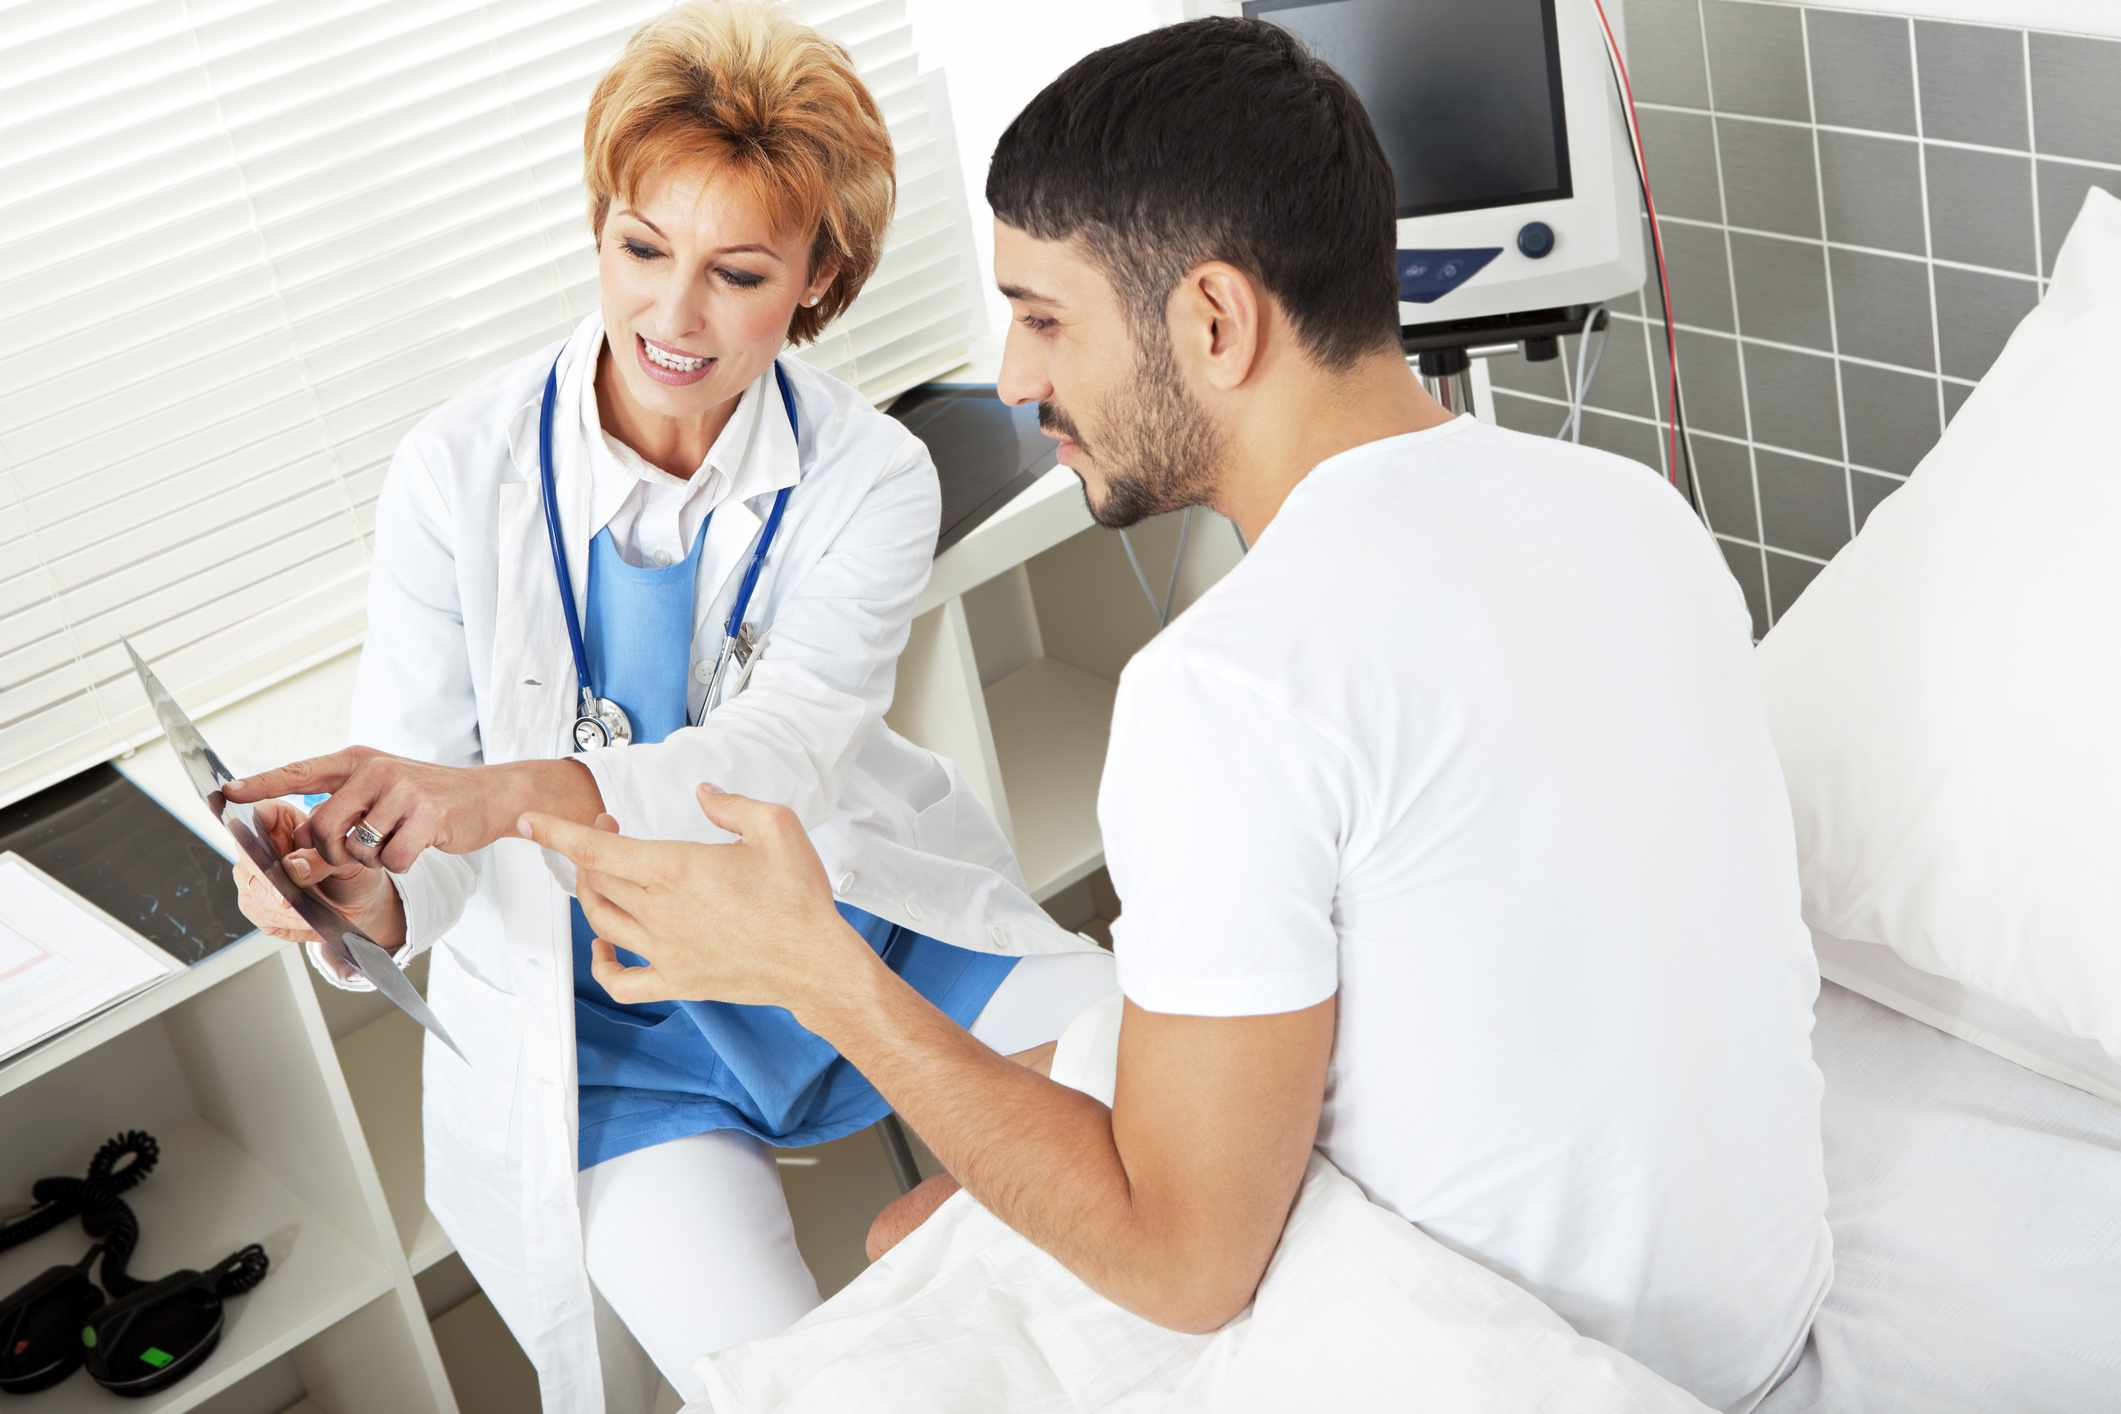 Female doctor explaining MRI exposure to a male patient